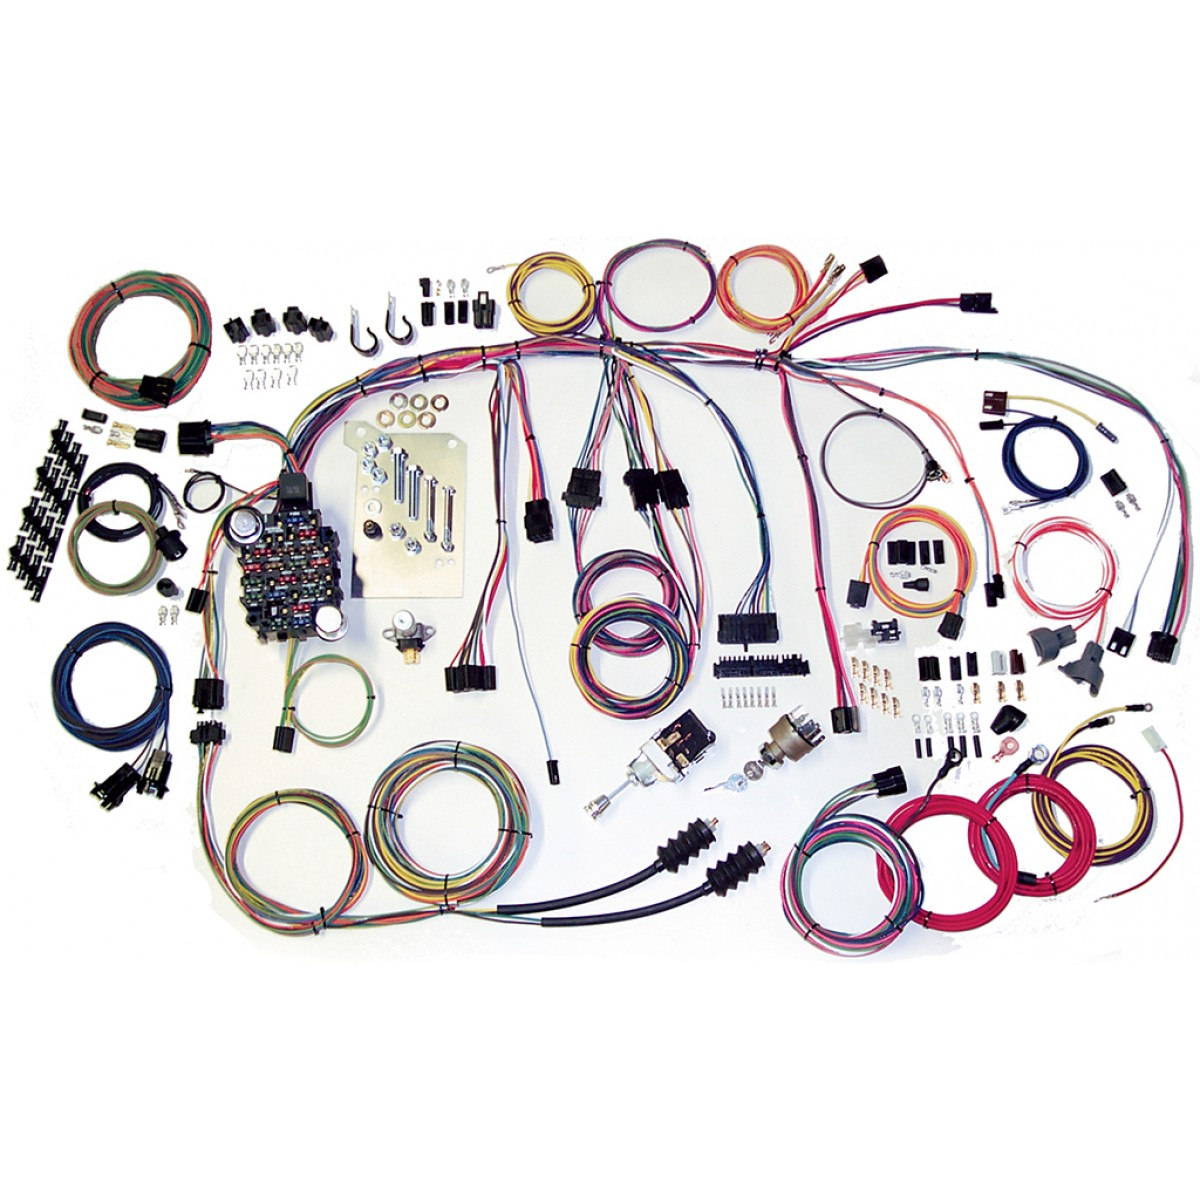 60 66 chevy truck wiring harness kit 1960 1966 chevy truck part 500560 chevy c10 c20 wiring harness chevy c10 wiring harness complete wiring harness kit 1960 1966 chevy wiring harness at aneh.co